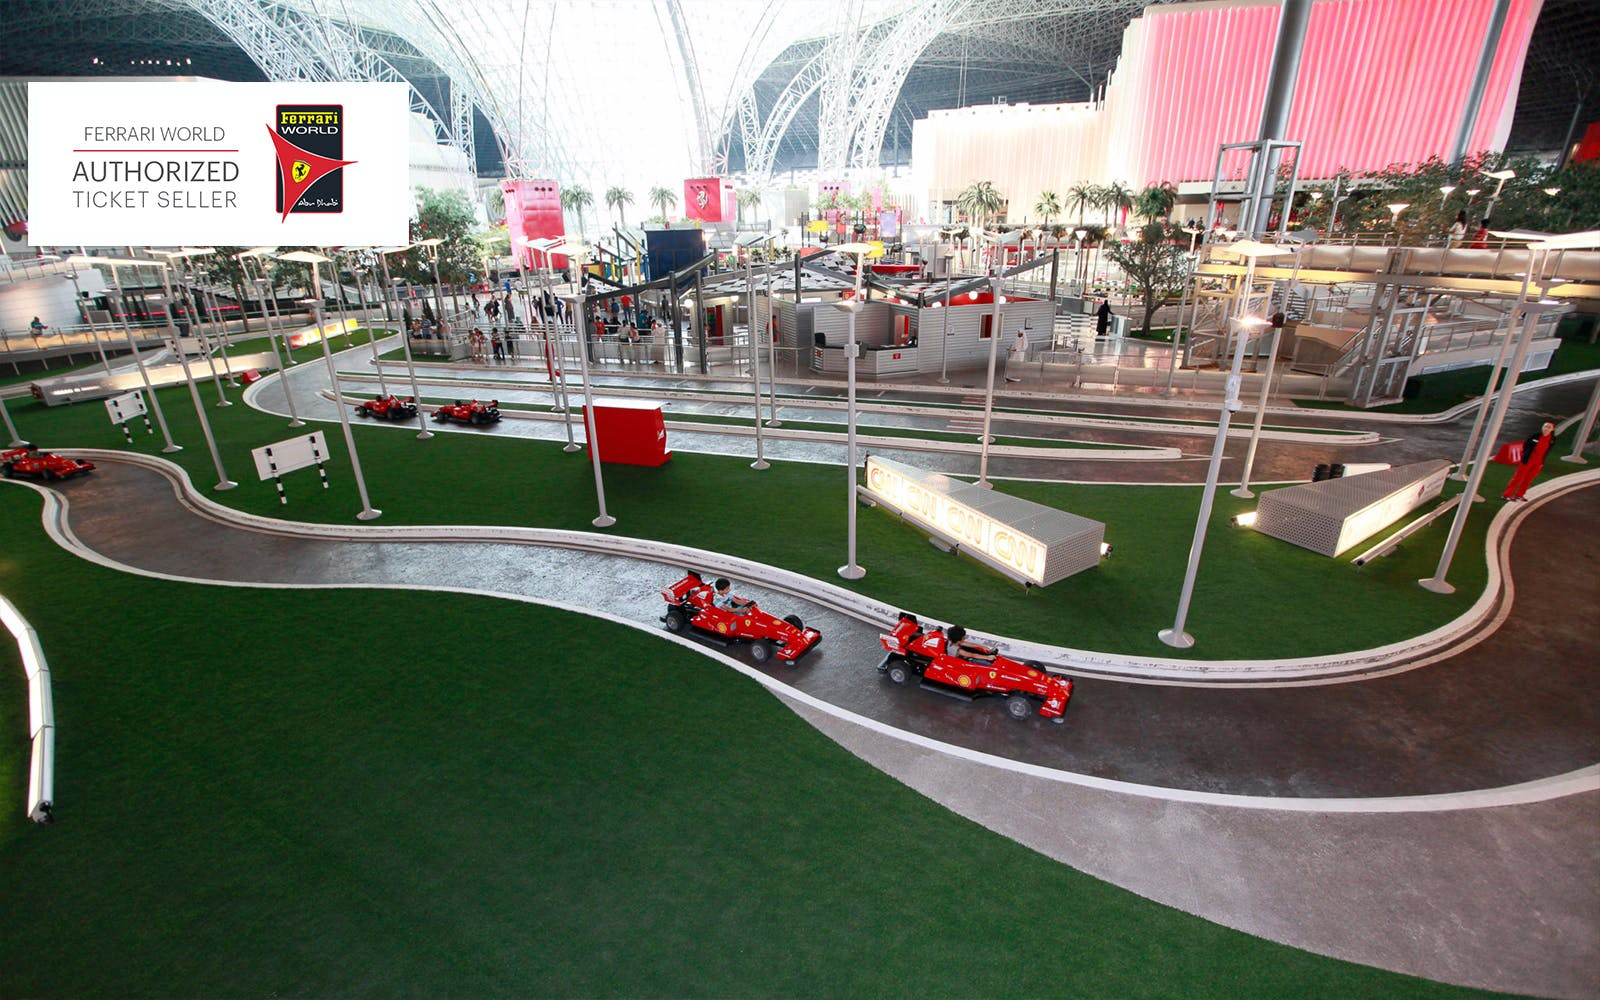 ferrari world and yas waterworld bronze pass -3